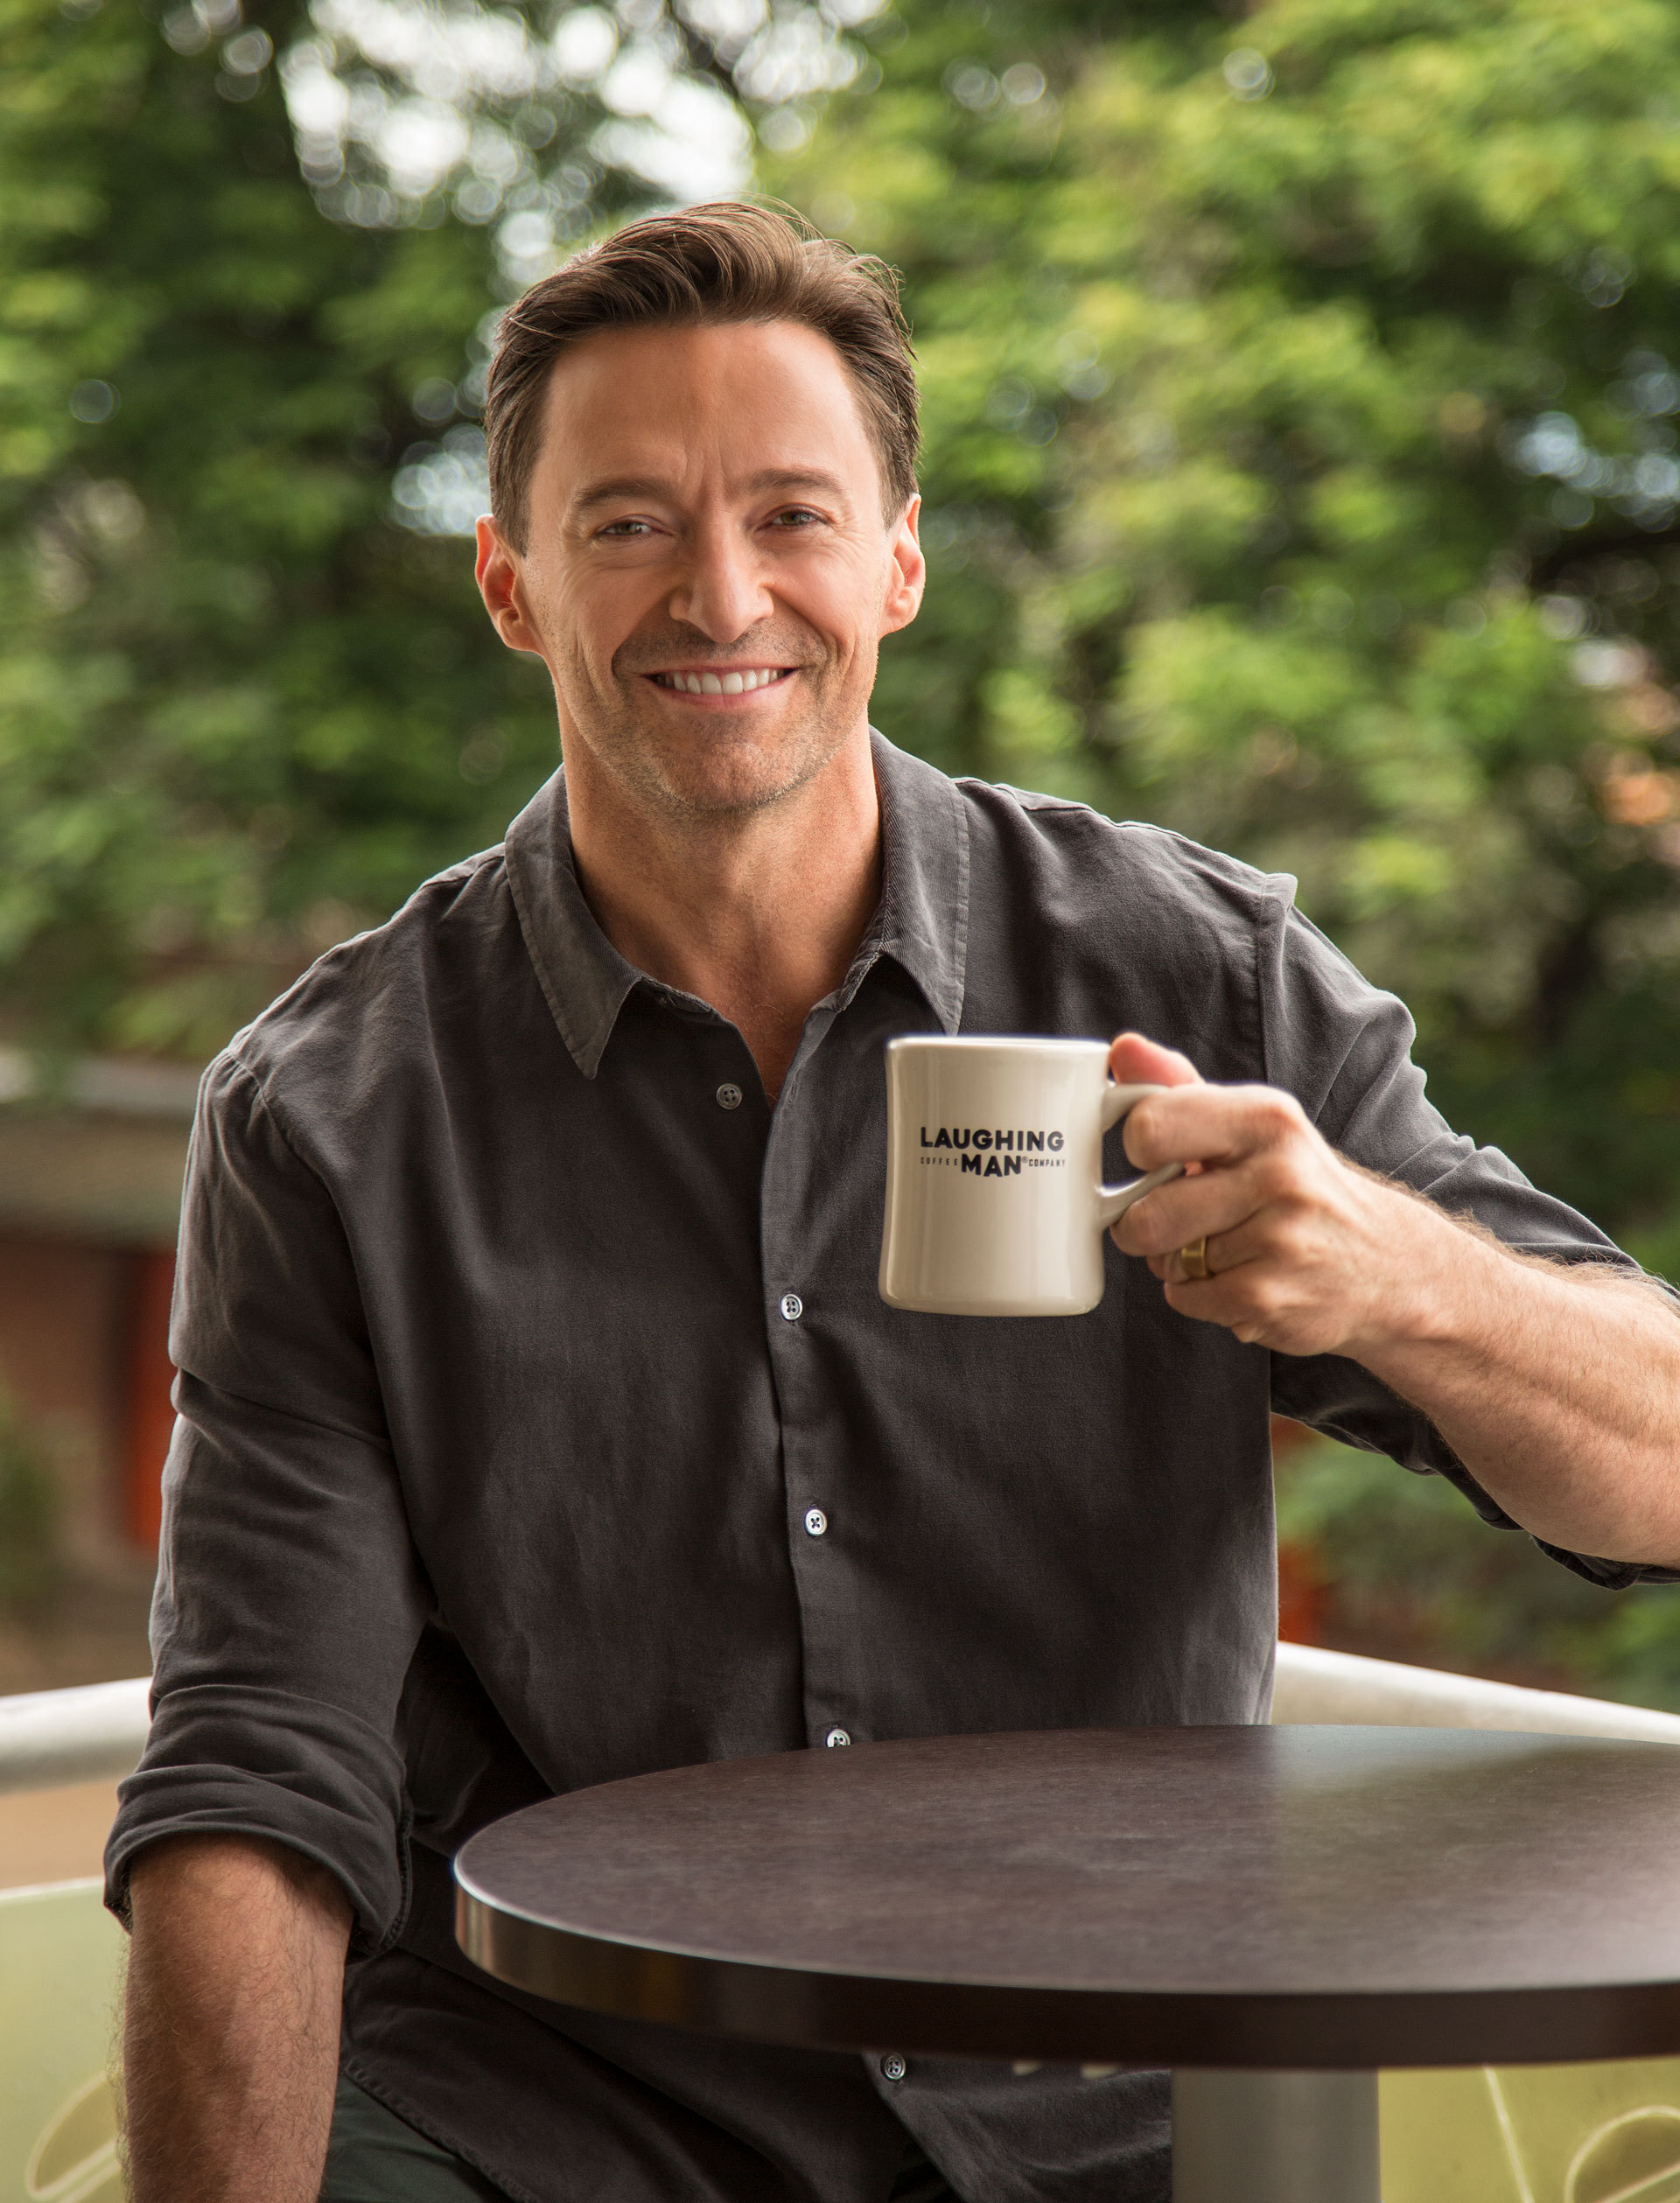 laughing man coffee hugh jackman